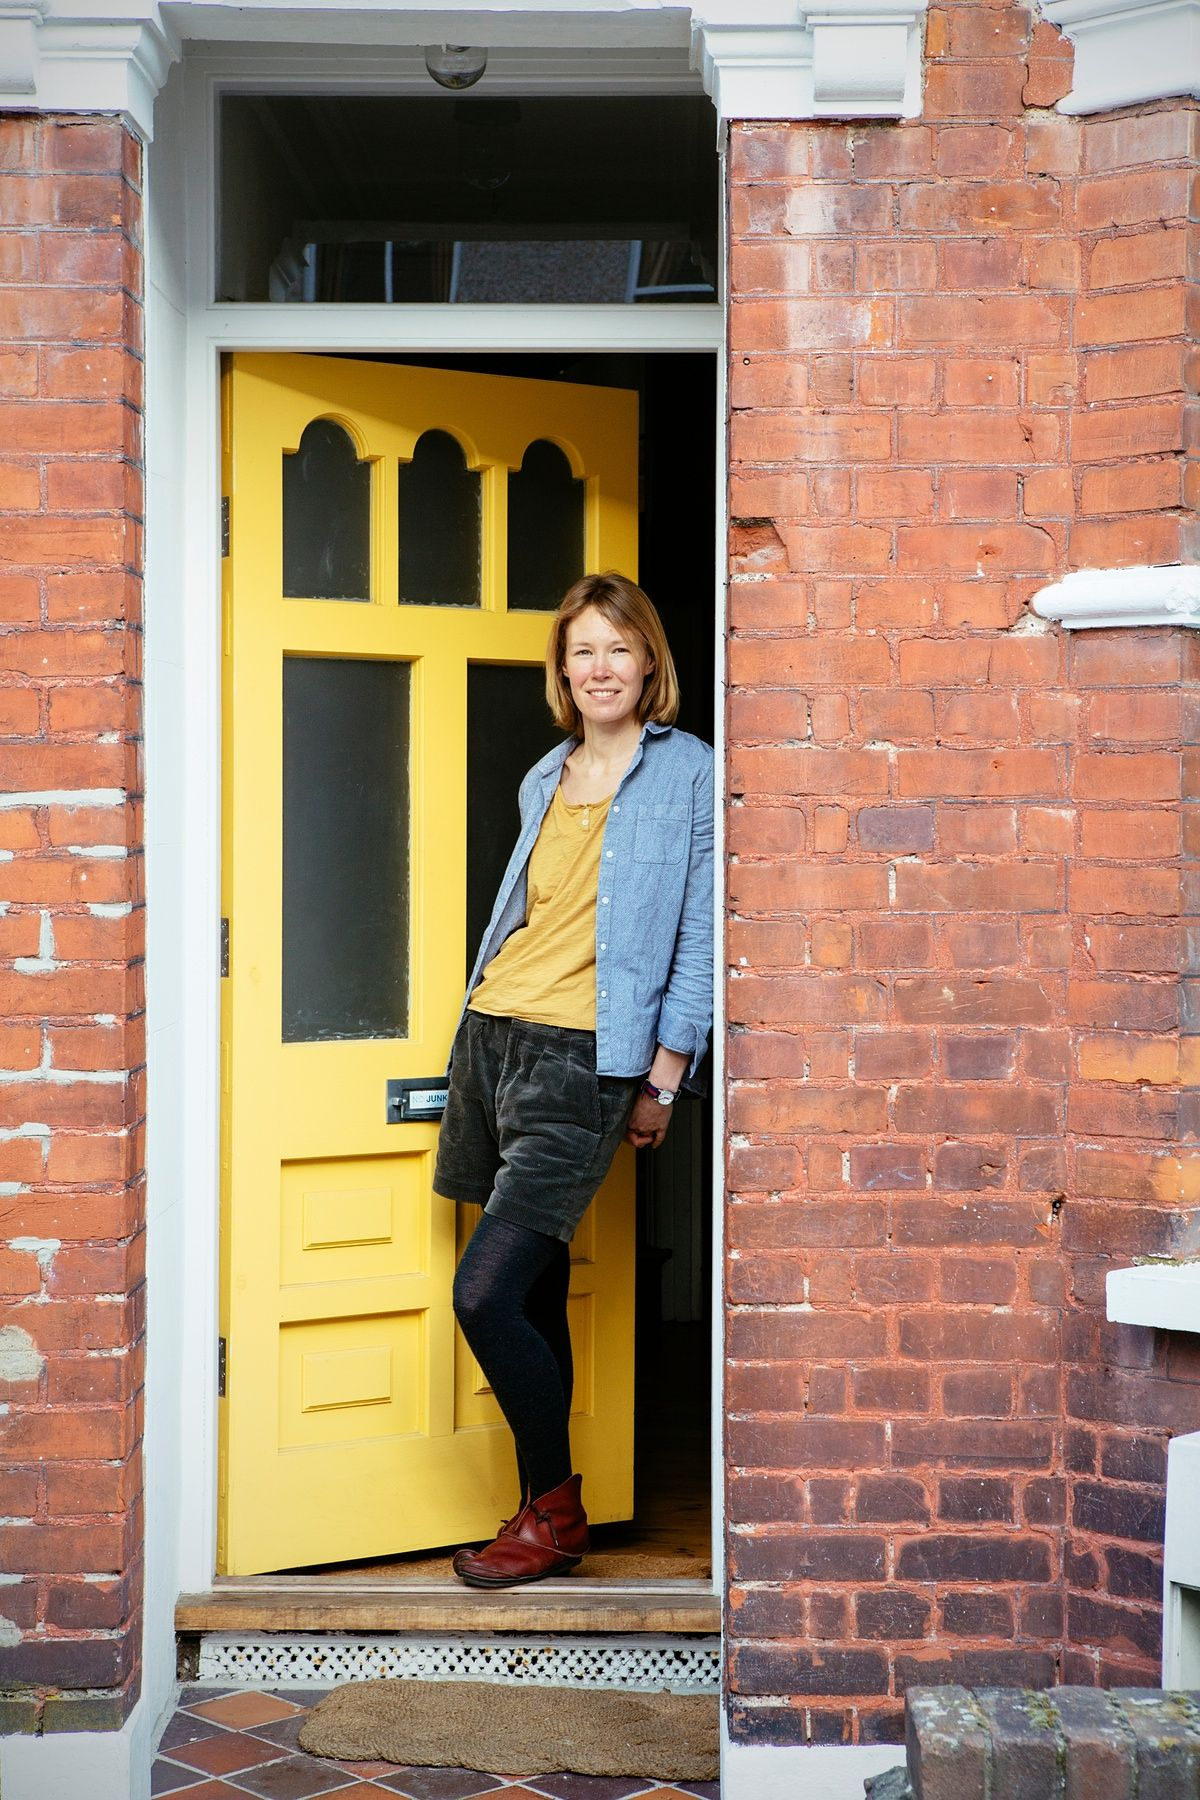 From an ex-display model sofa to inexpensive antique finds, Nell Card shares her secrets for creating a stylish home without splashing the cash